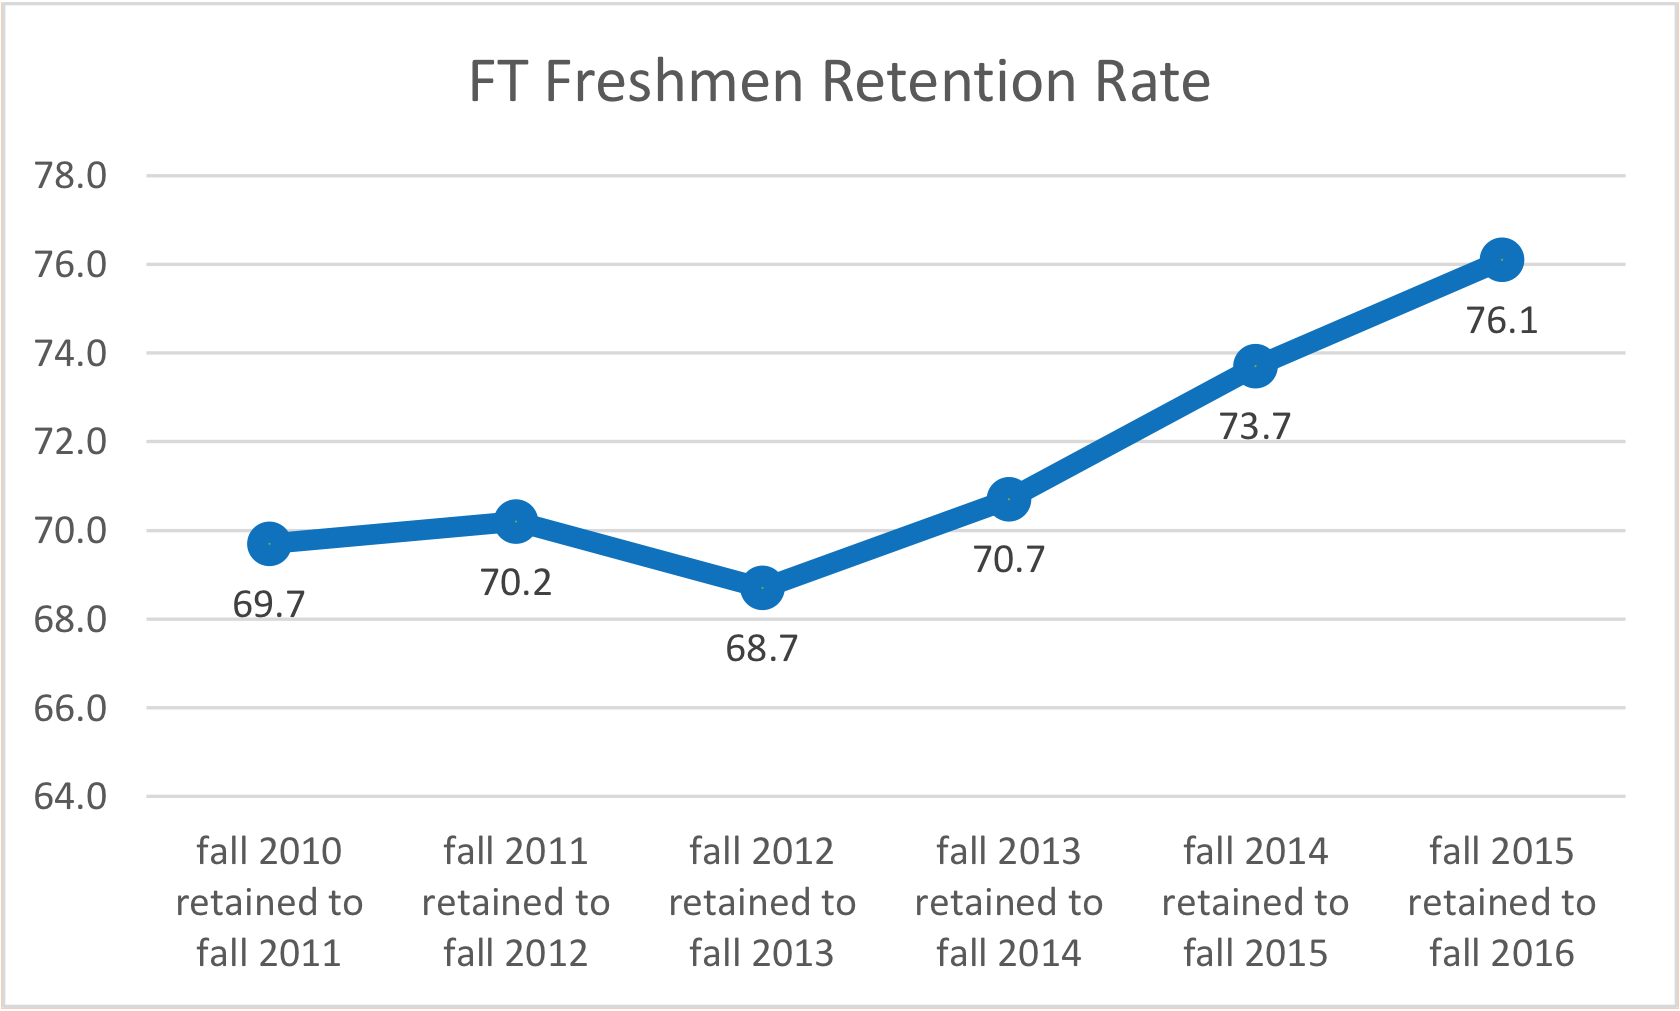 Figure 1, MTSU full-time freshmen retention rates: fall 2011 to fall 2016